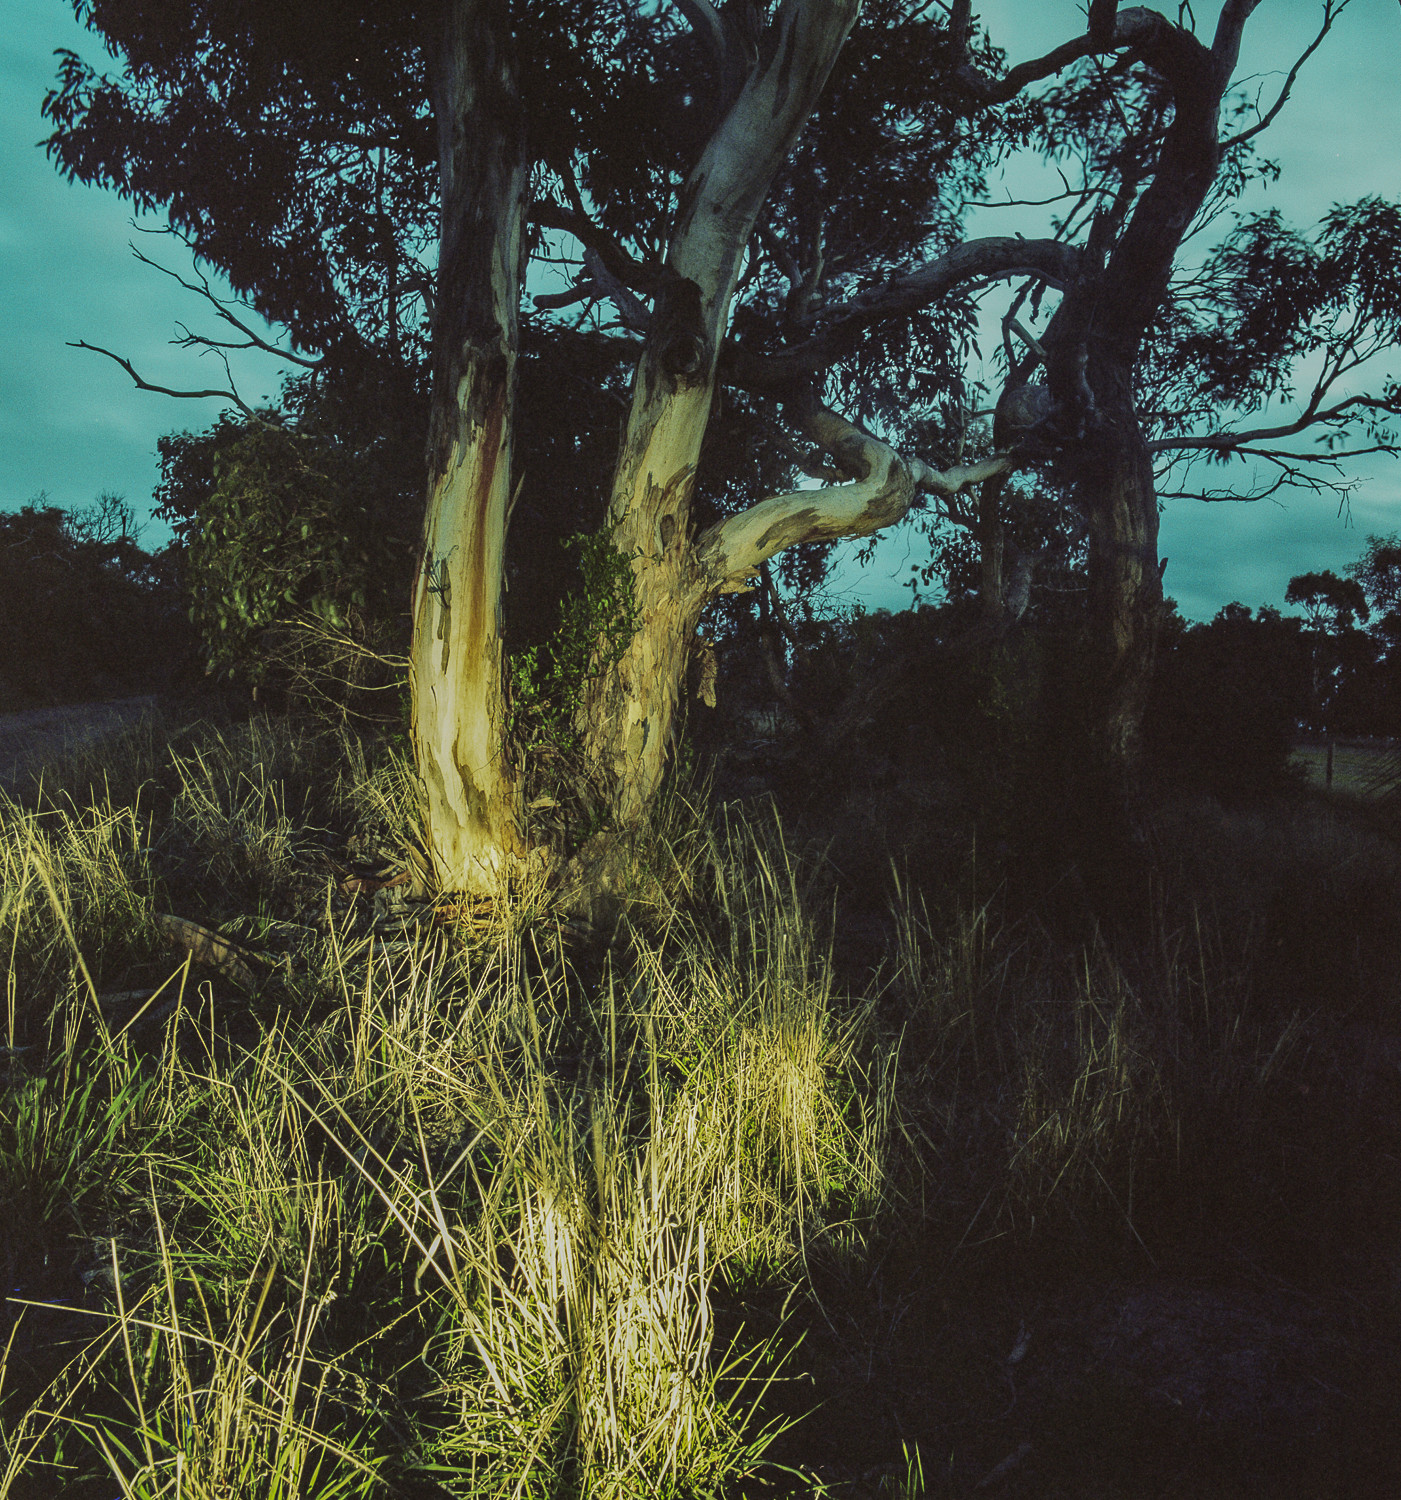 twilight, Waitpinga